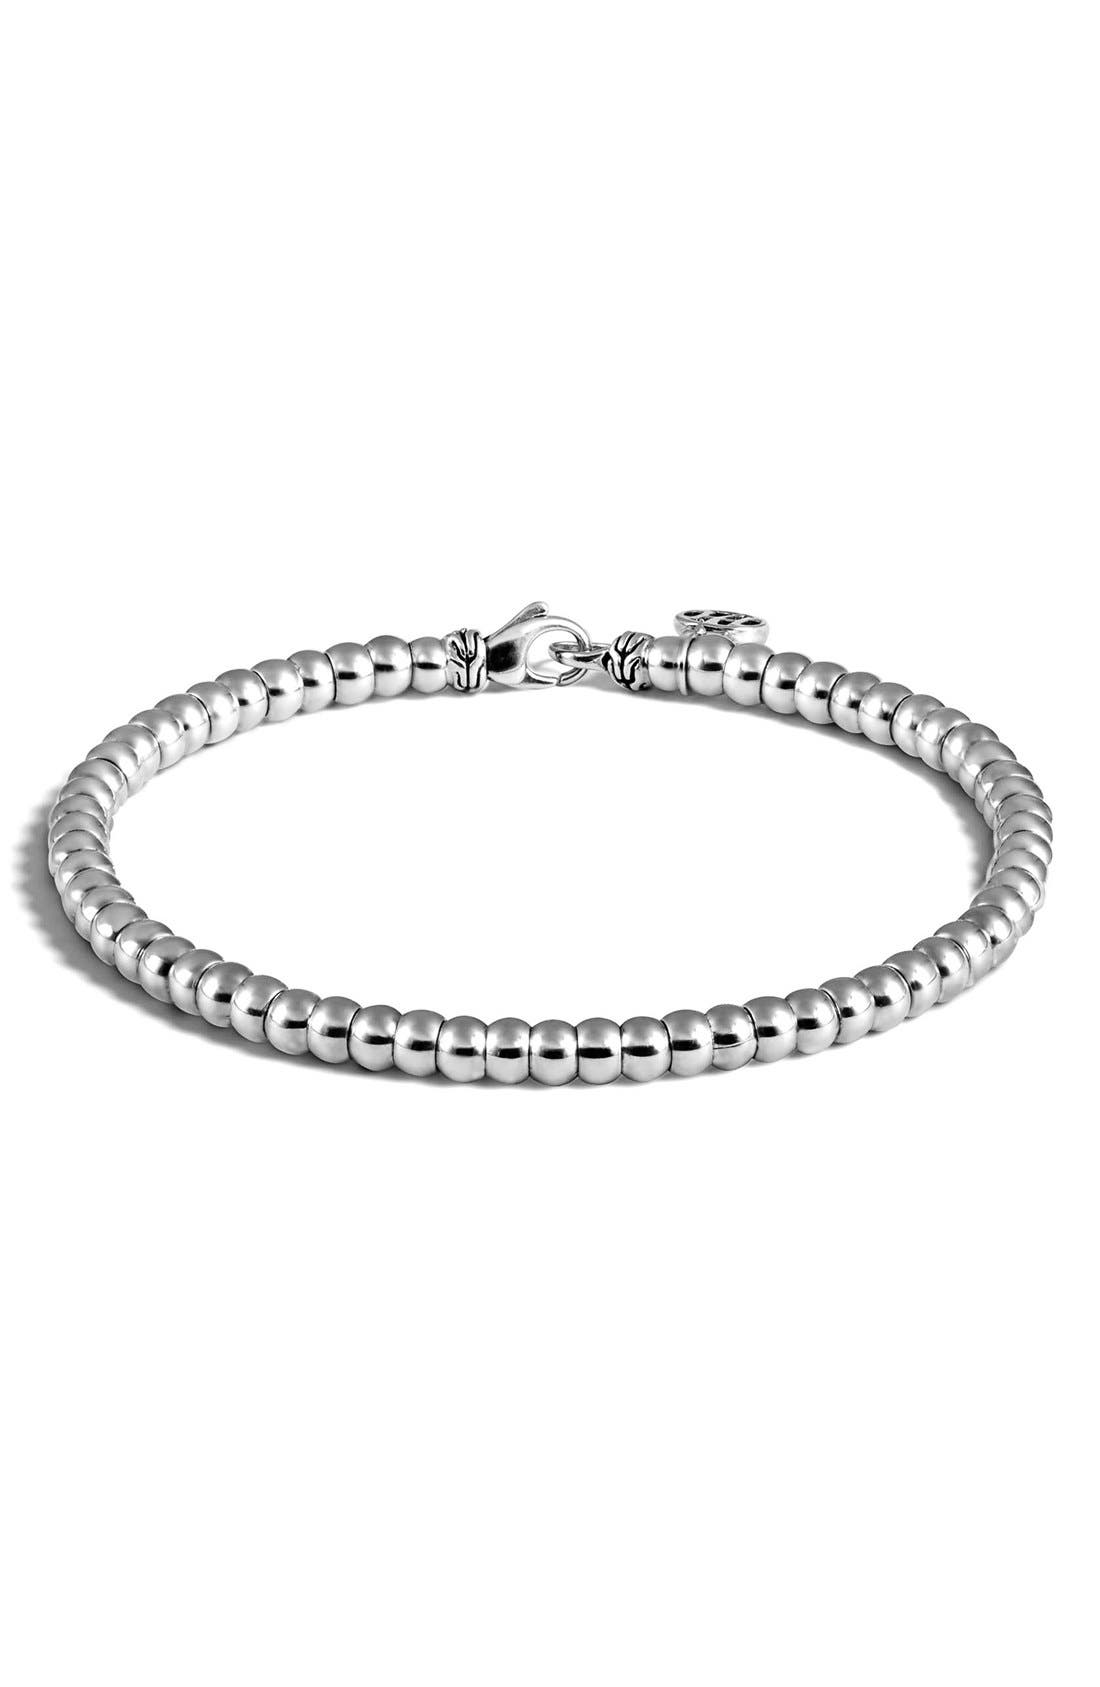 Alternate Image 1 Selected - John Hardy 'Classic Chain' Beaded Sterling Silver Bracelet